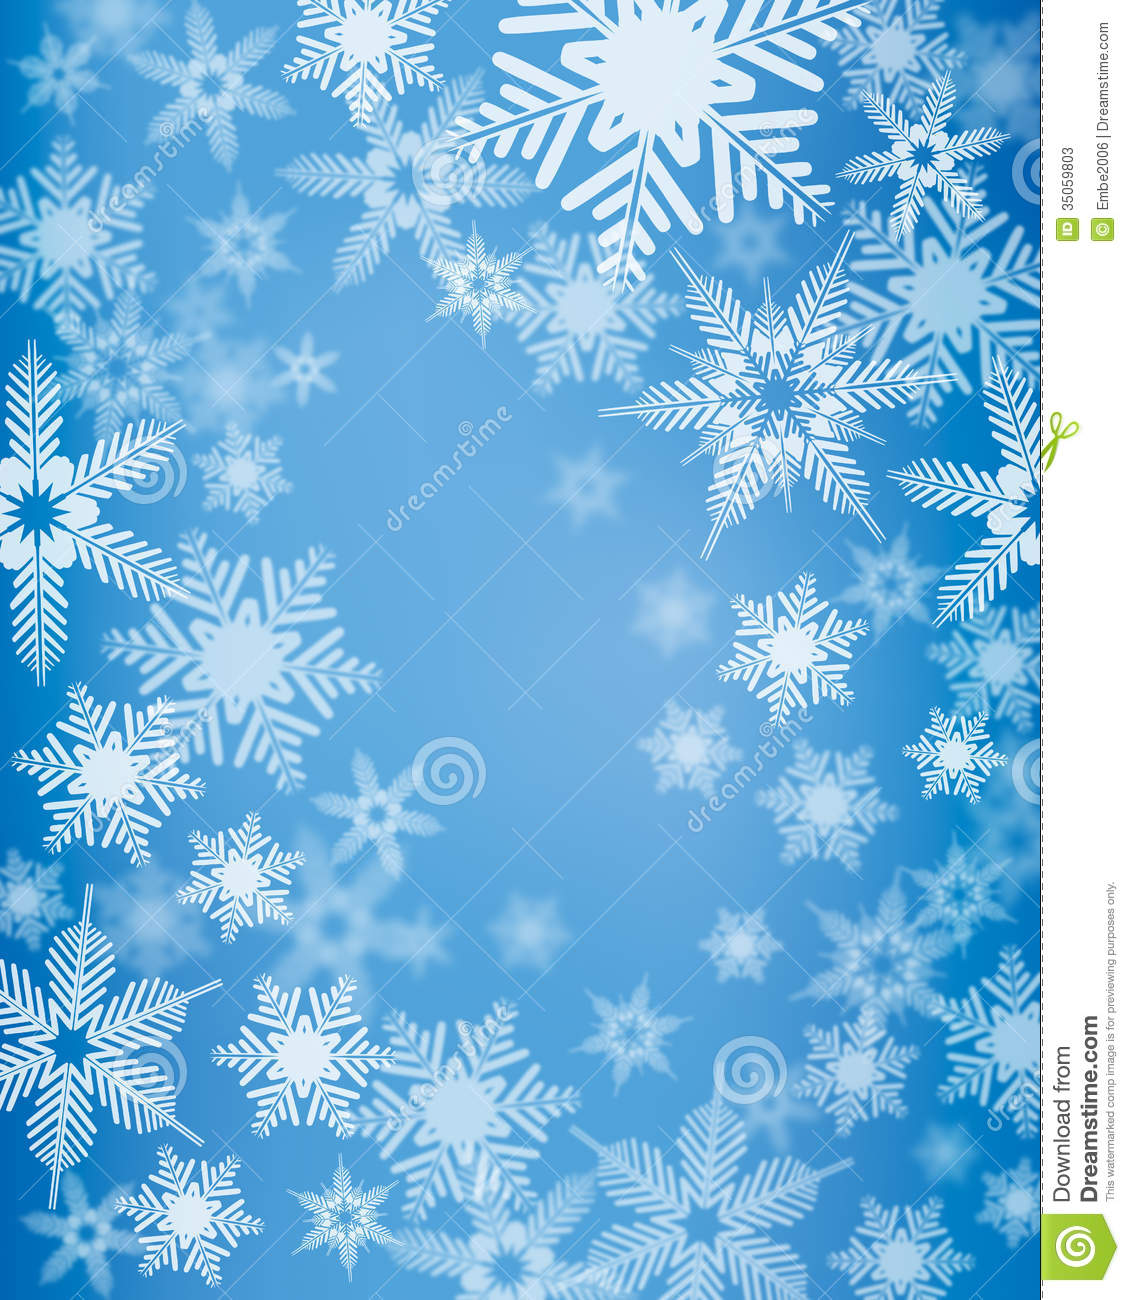 Snow Falling Wallpapers Free Download Snowflake Background Stock Photos Image 35059803